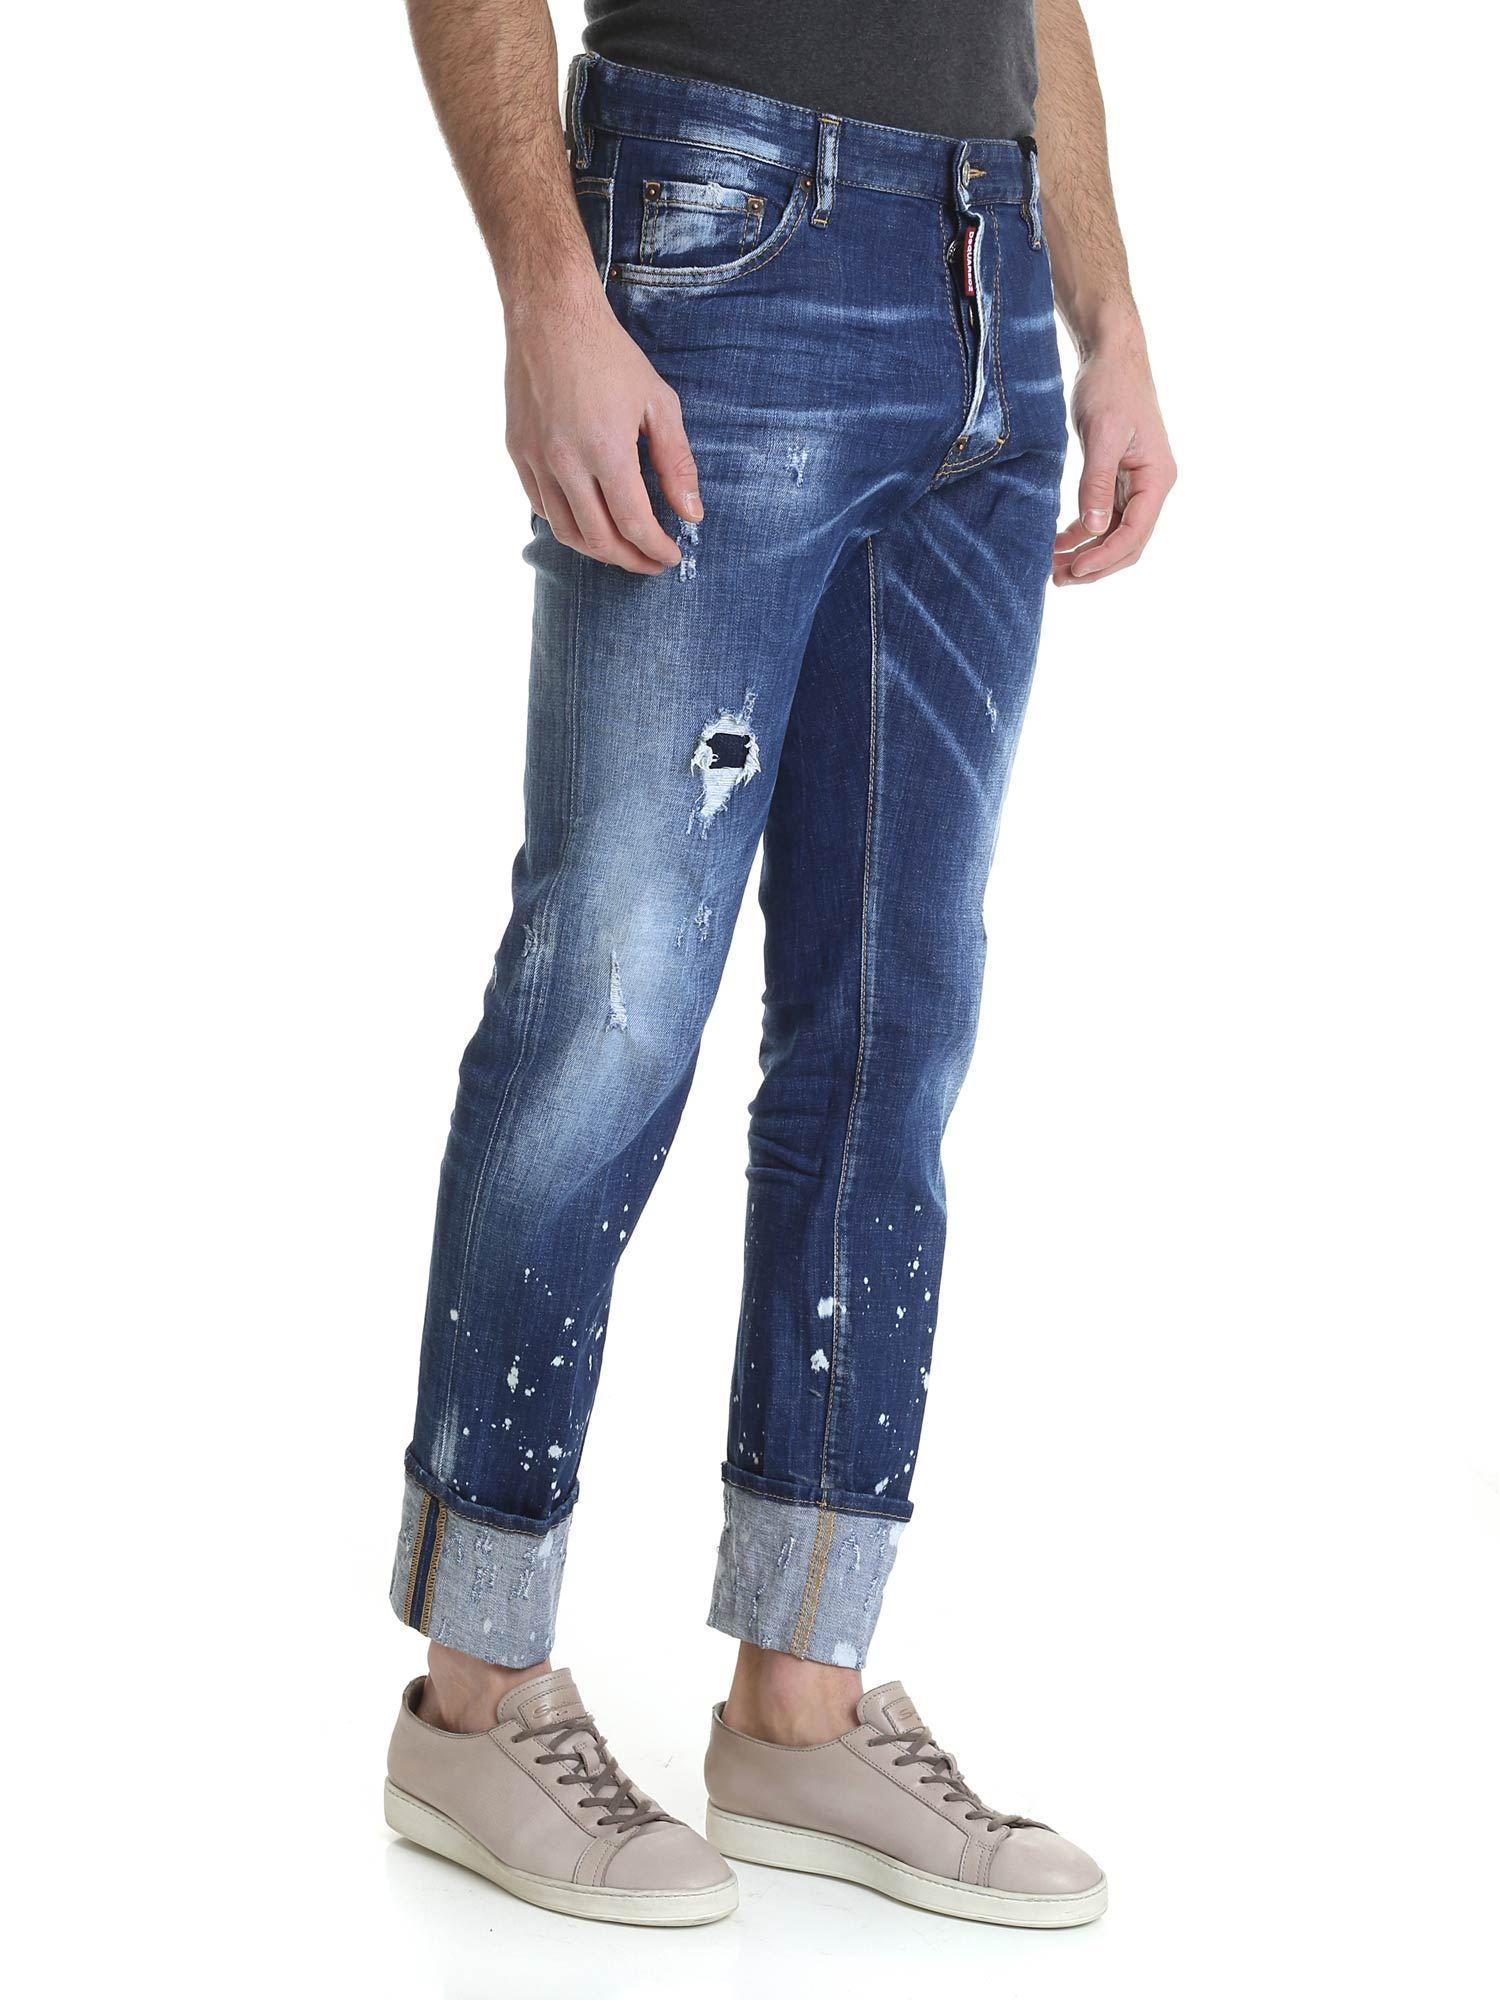 3b5e7415293 Lyst - DSquared² Cool Guy Jeans In Blue With Turned-up Bottom in Blue for  Men